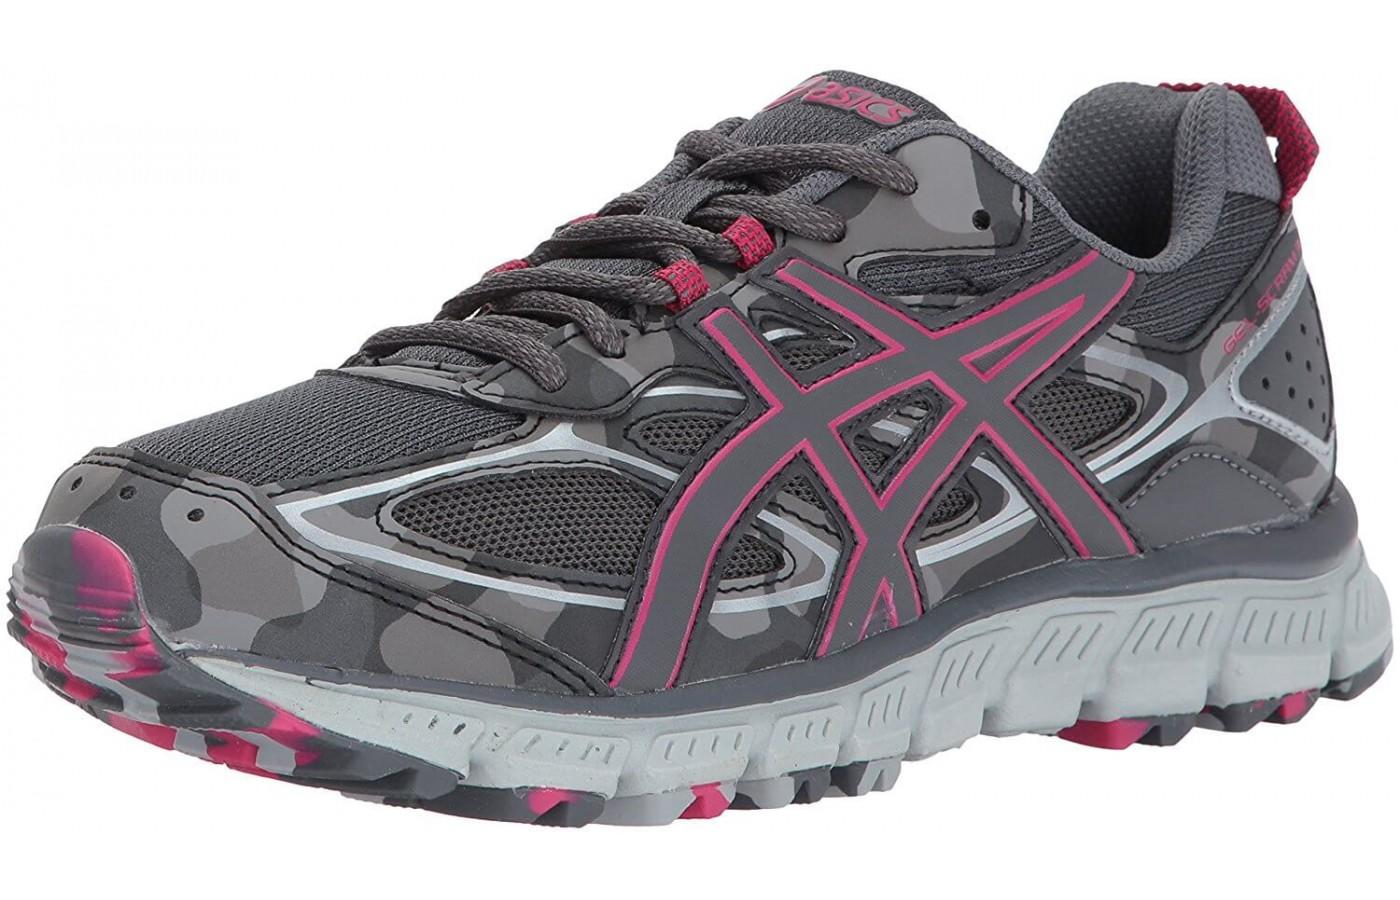 The Asics Gel Scram 3 is a no nonsense trail running shoe.